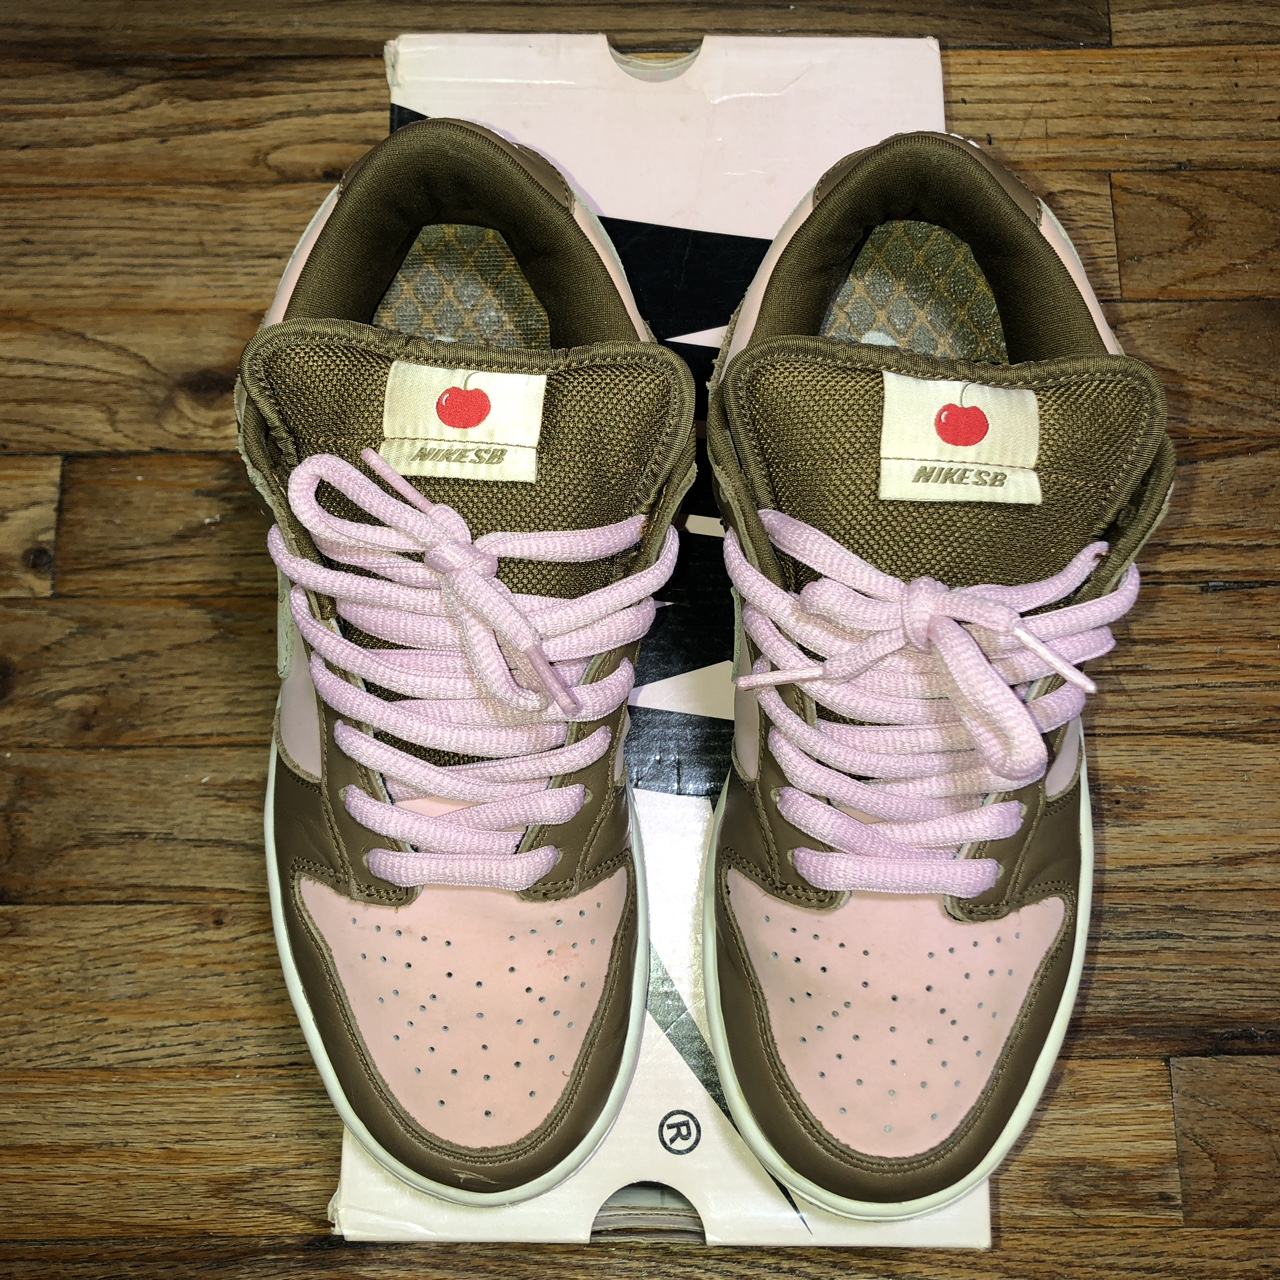 separation shoes 62b71 1a889 2005 release of the Stussy x Nike SB Dunk Low... - Depop